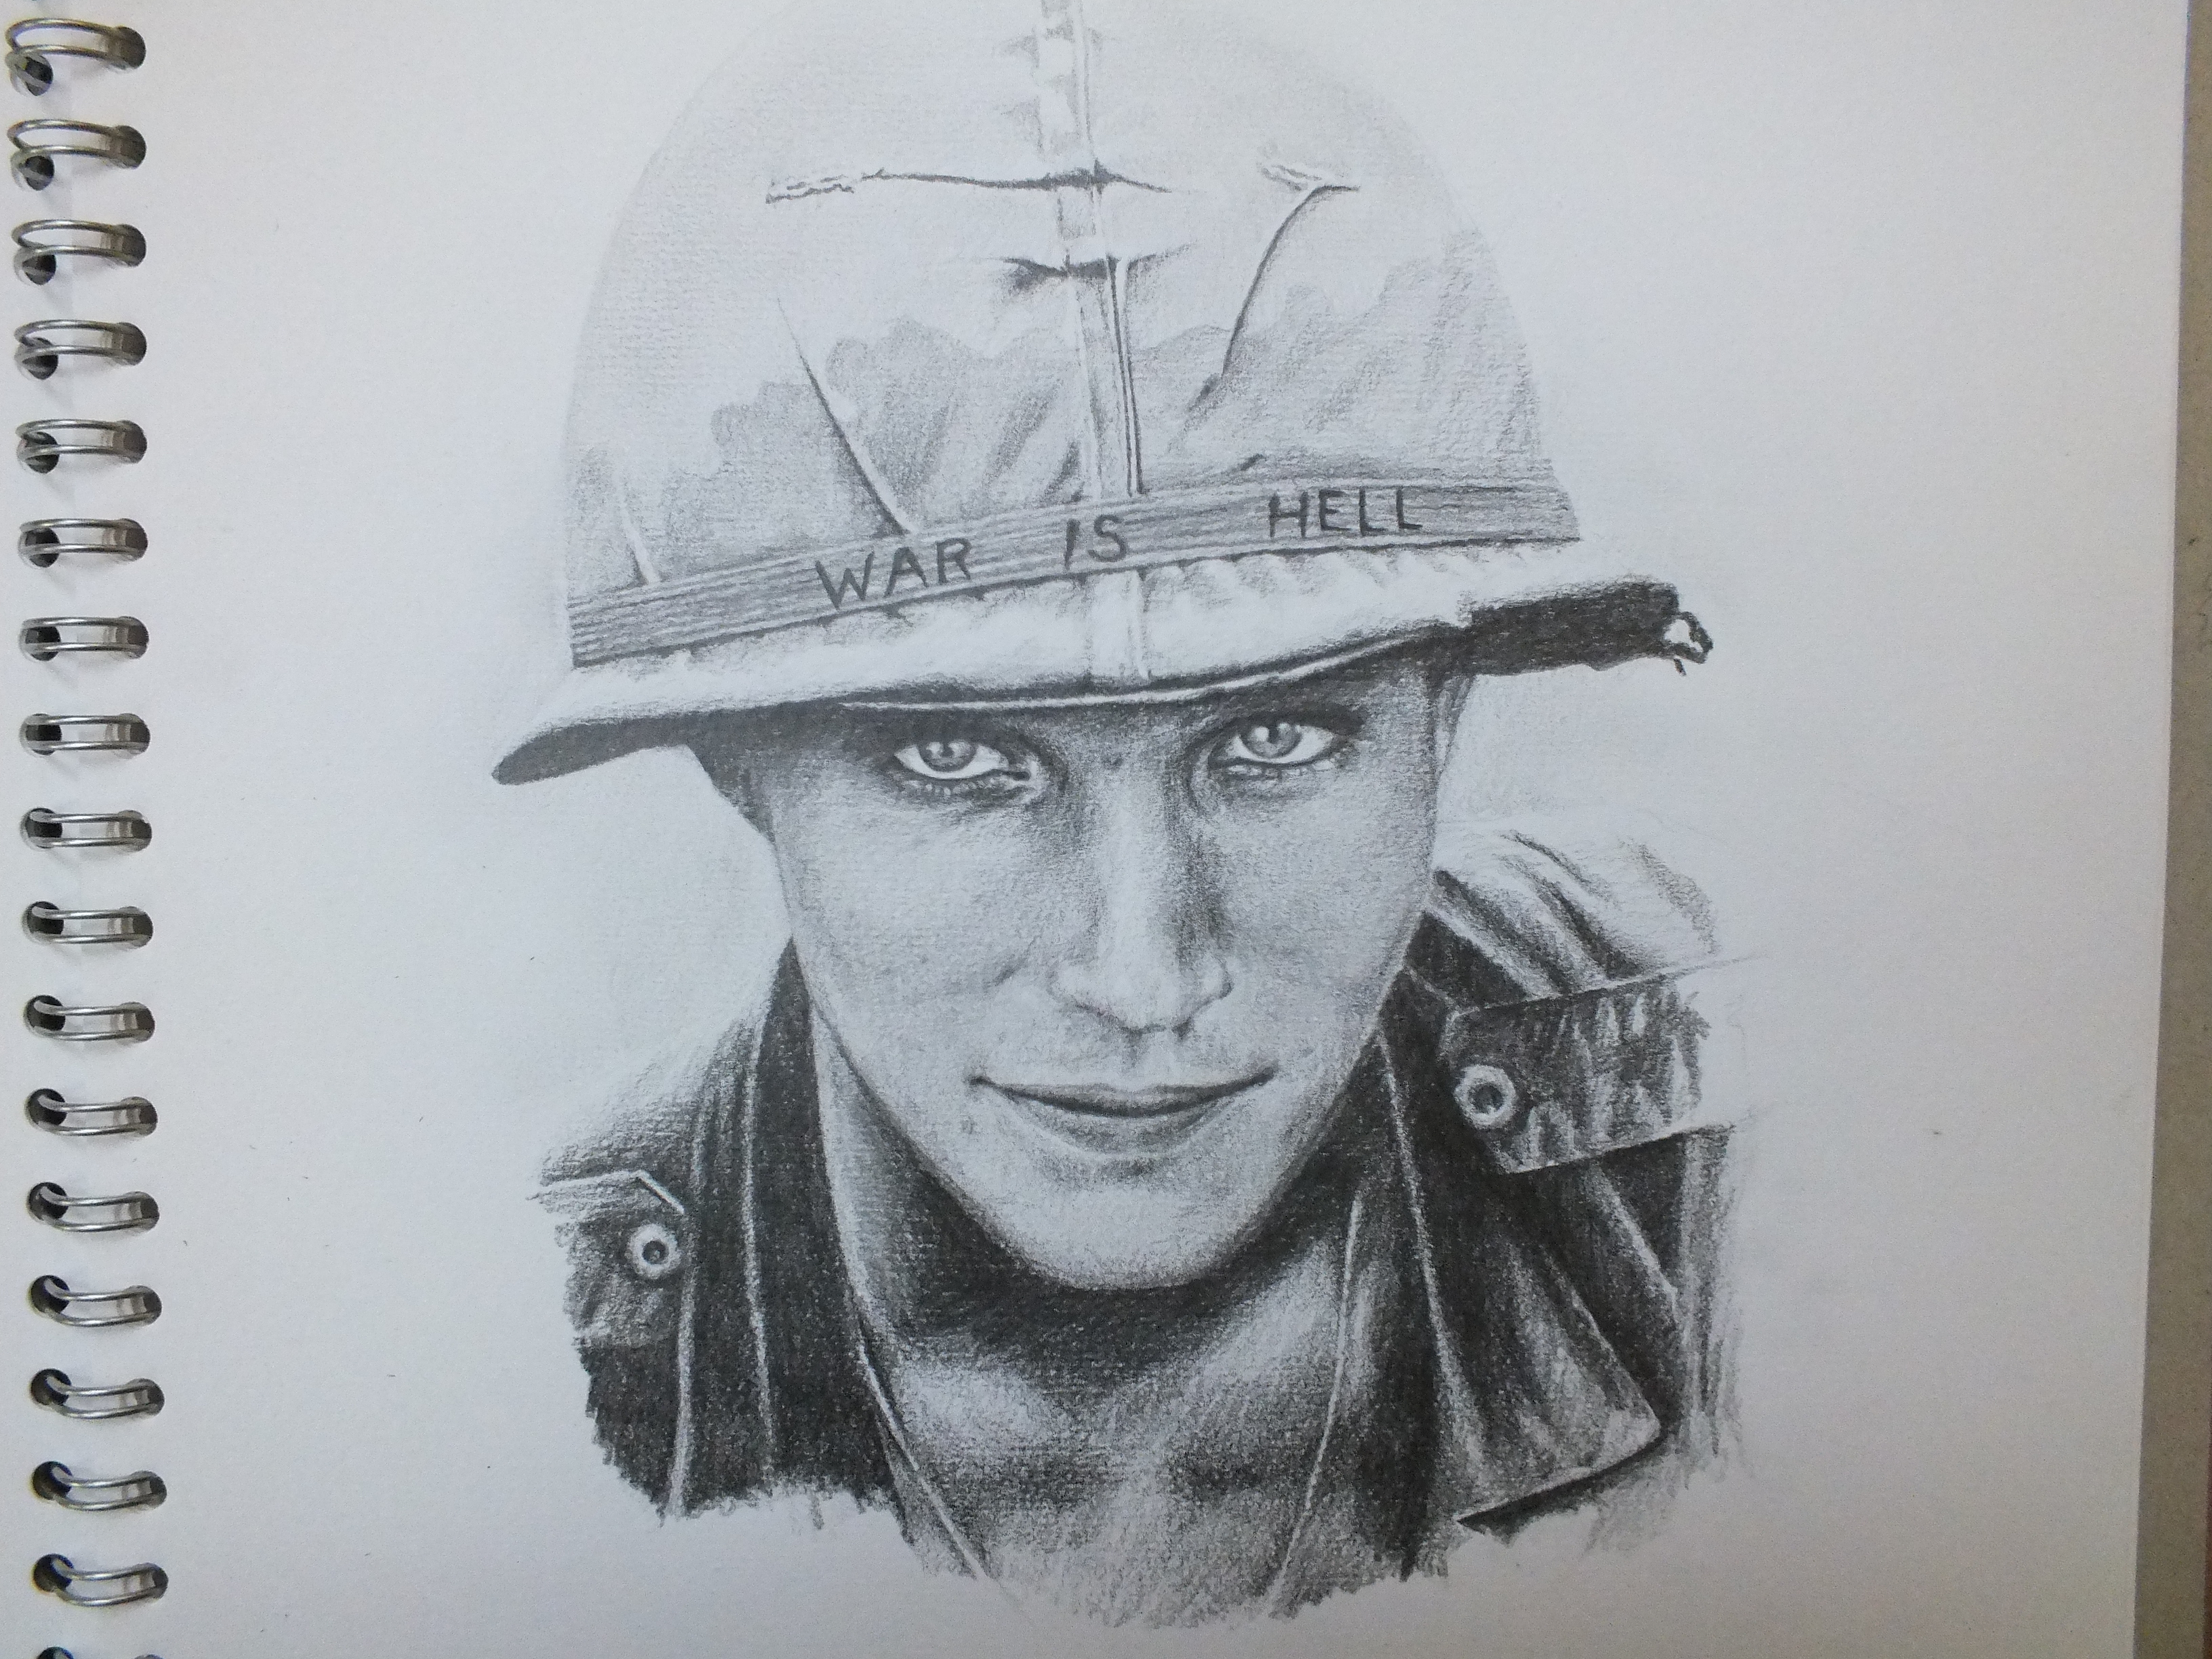 3264x2448 Pencil Drawing Based On A Photograph Of A Us Soldier In Vietnam